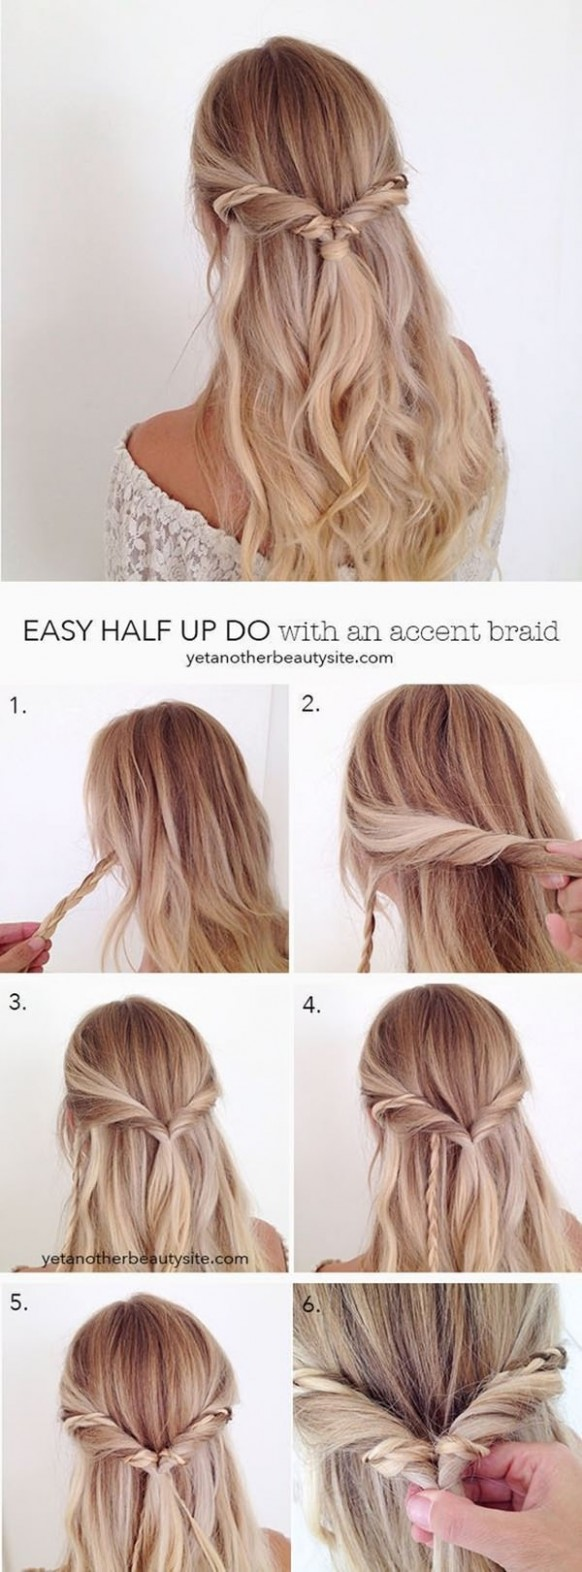 11 Easy Updos For Long Hair And How To Do Them Style Easily Hairstyles For Long Hair Step By Step